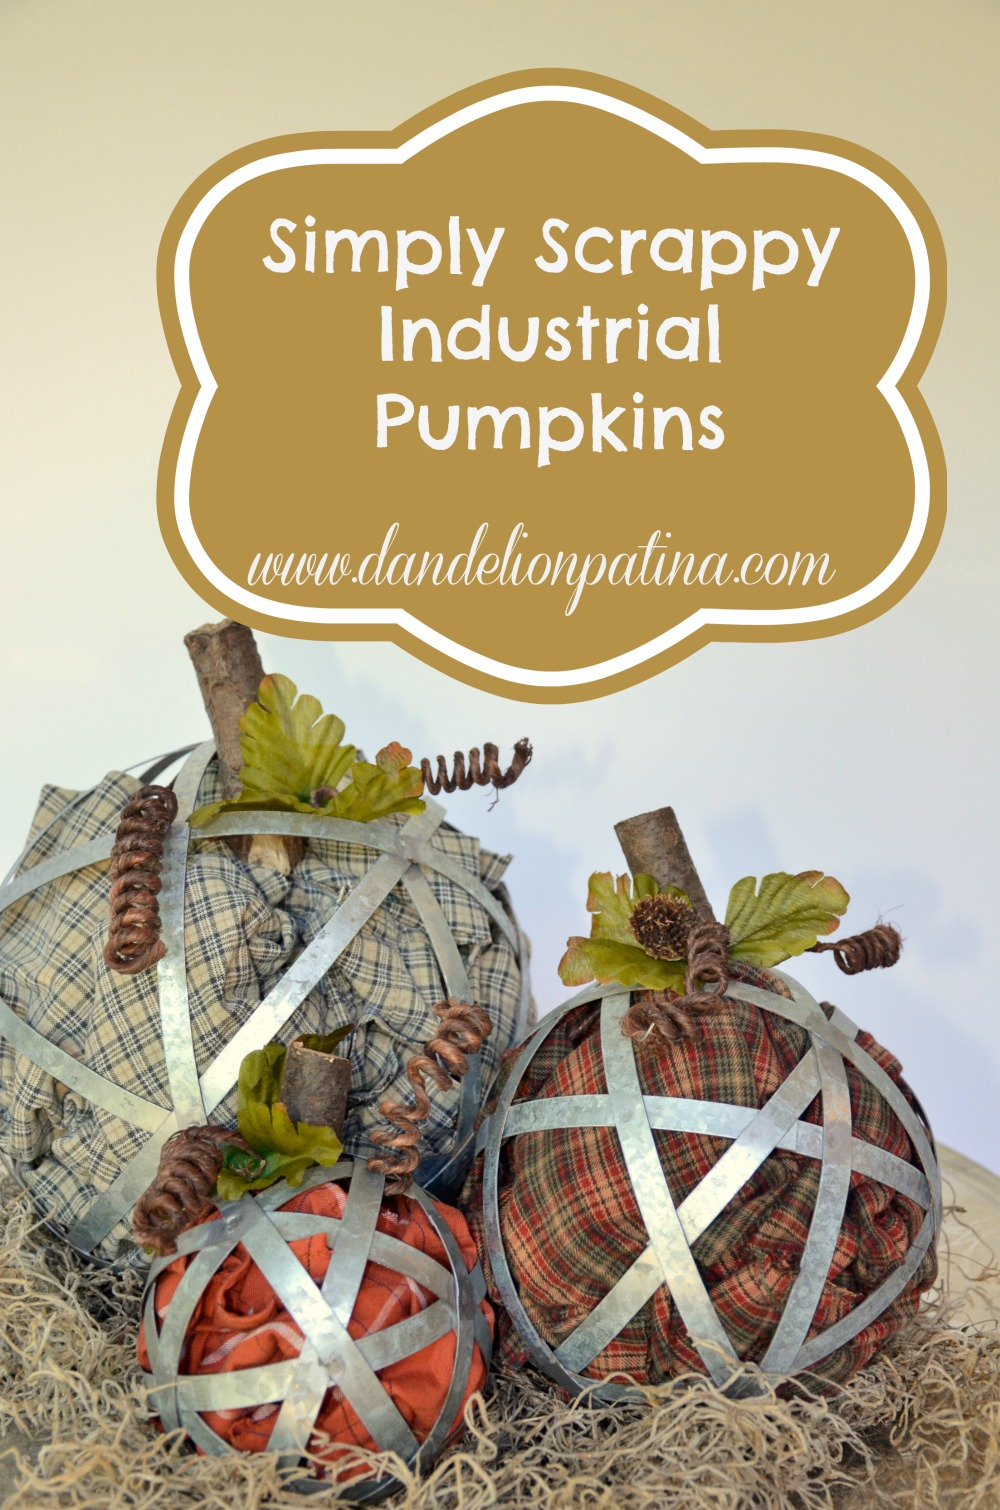 simply scrappy industrial pumpkins by dandelion patina